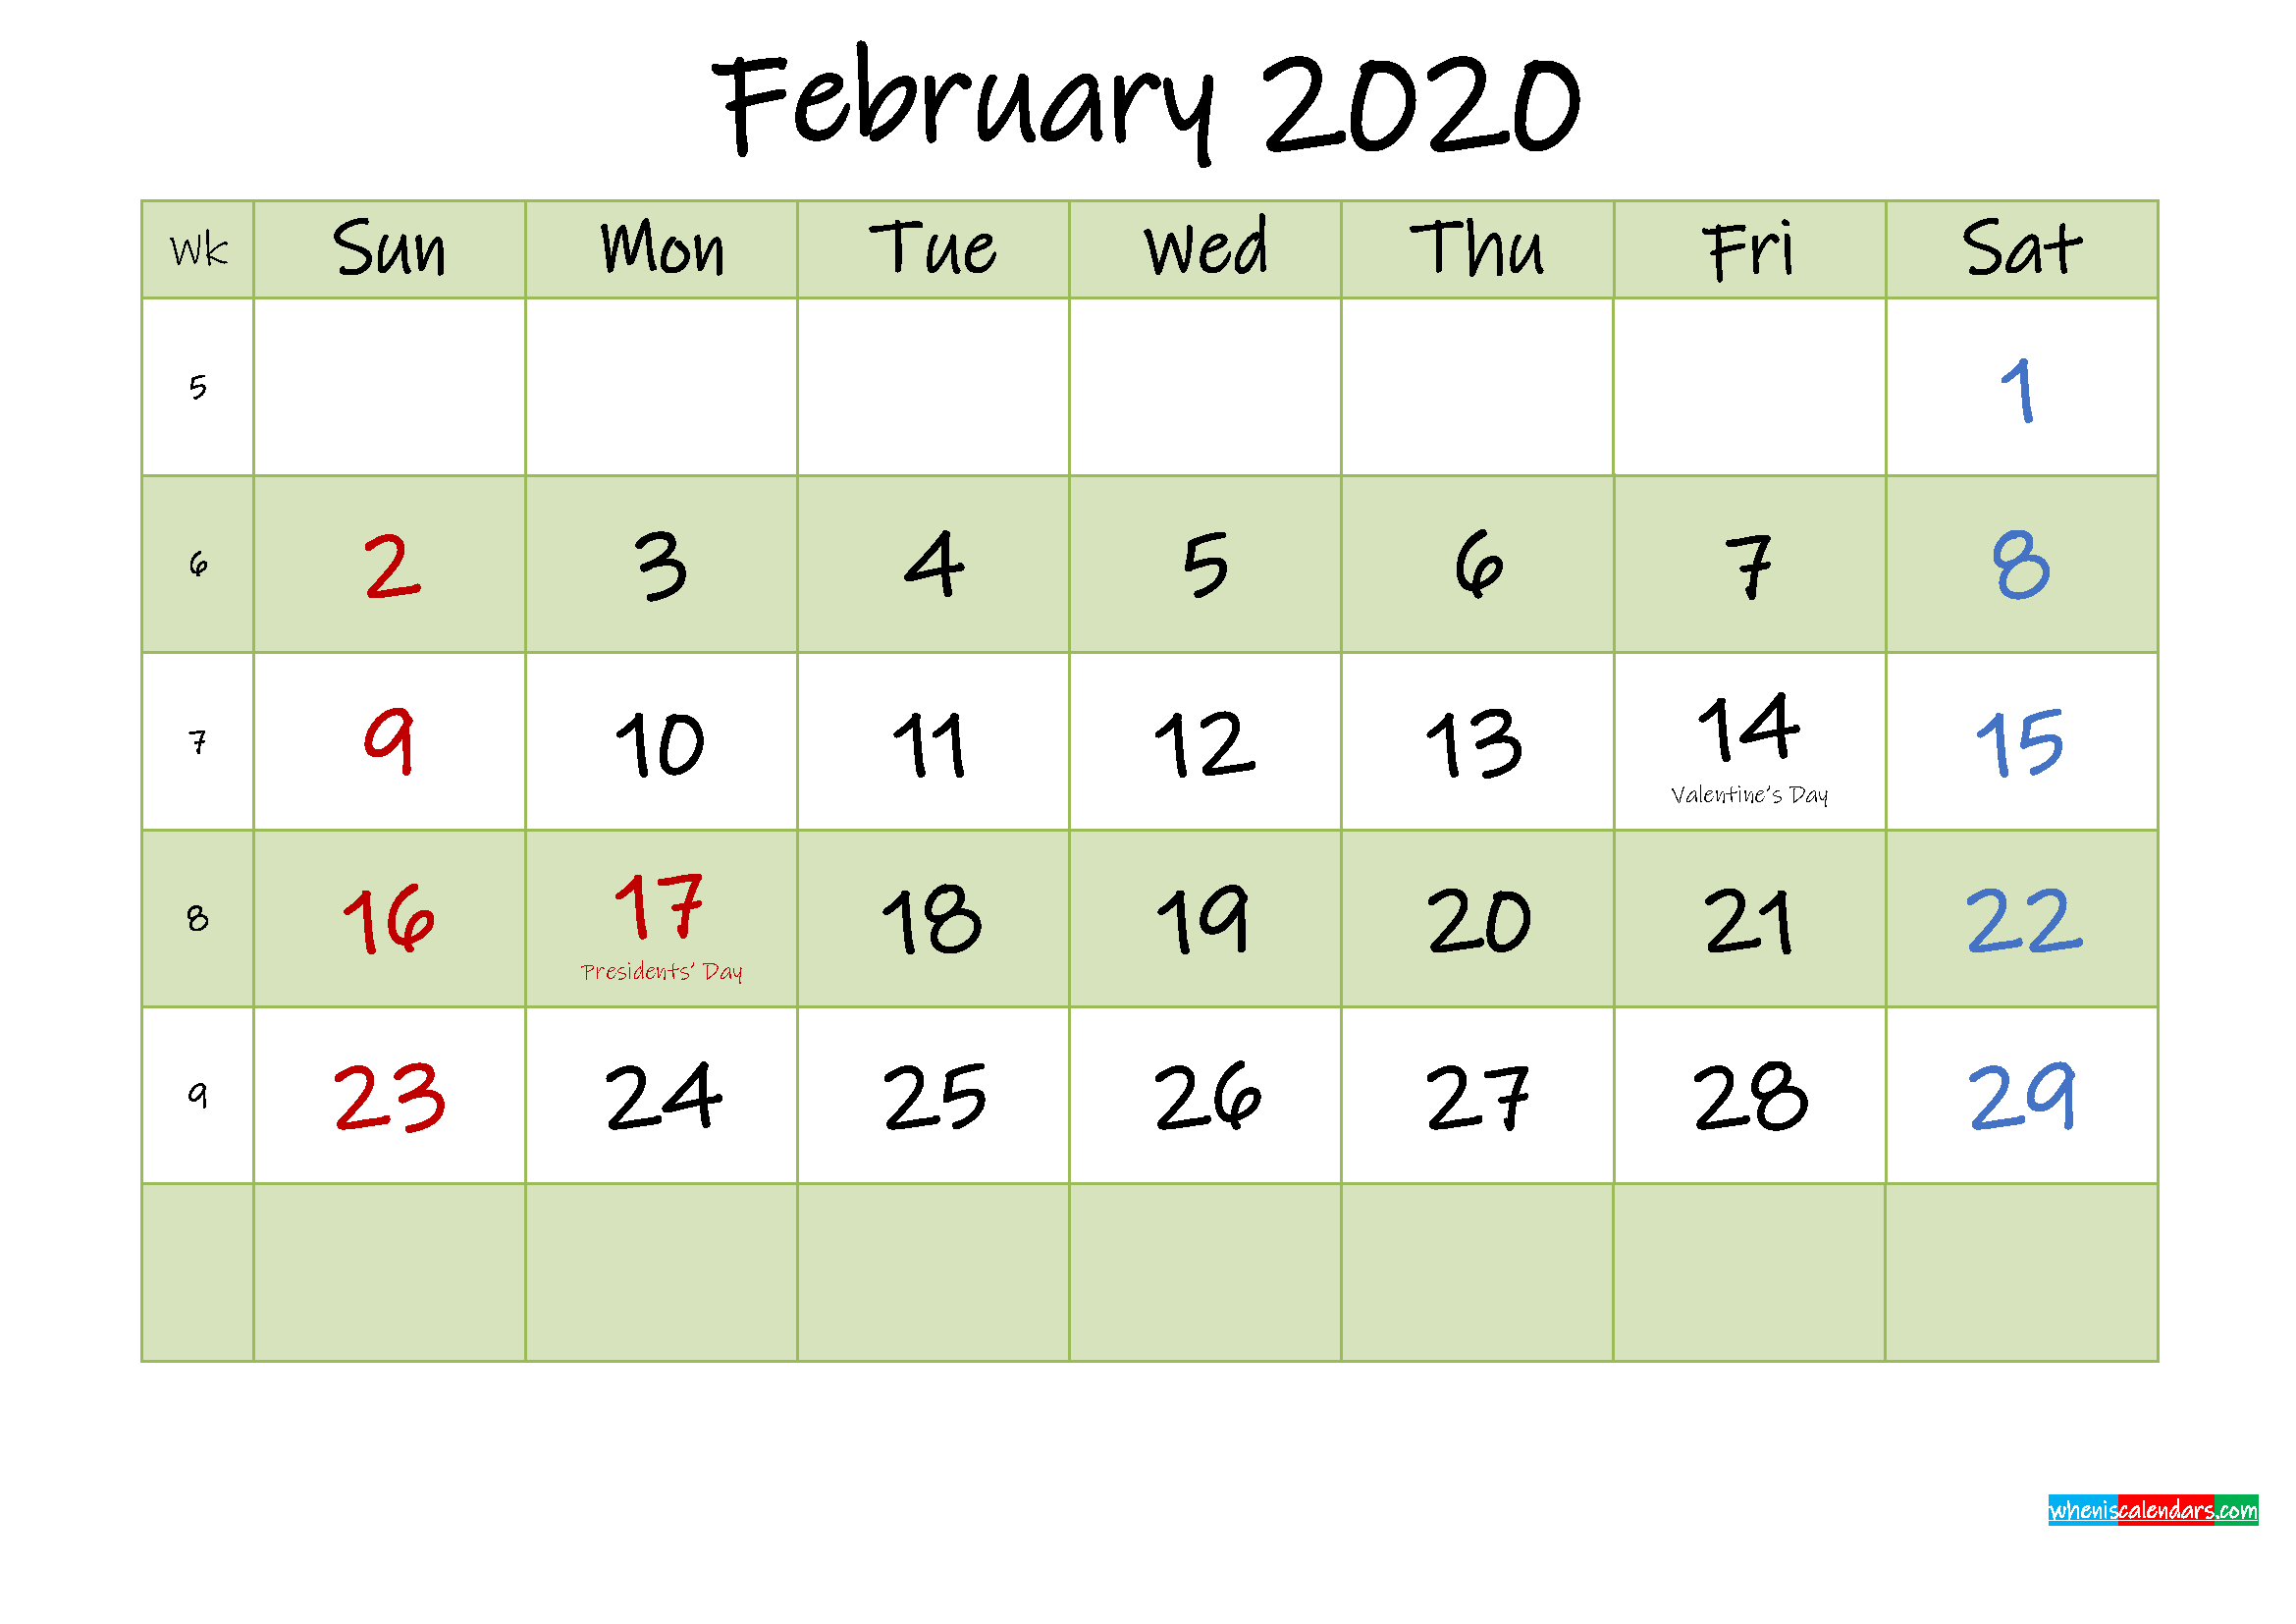 February 2020 Calendar with Holidays Printable